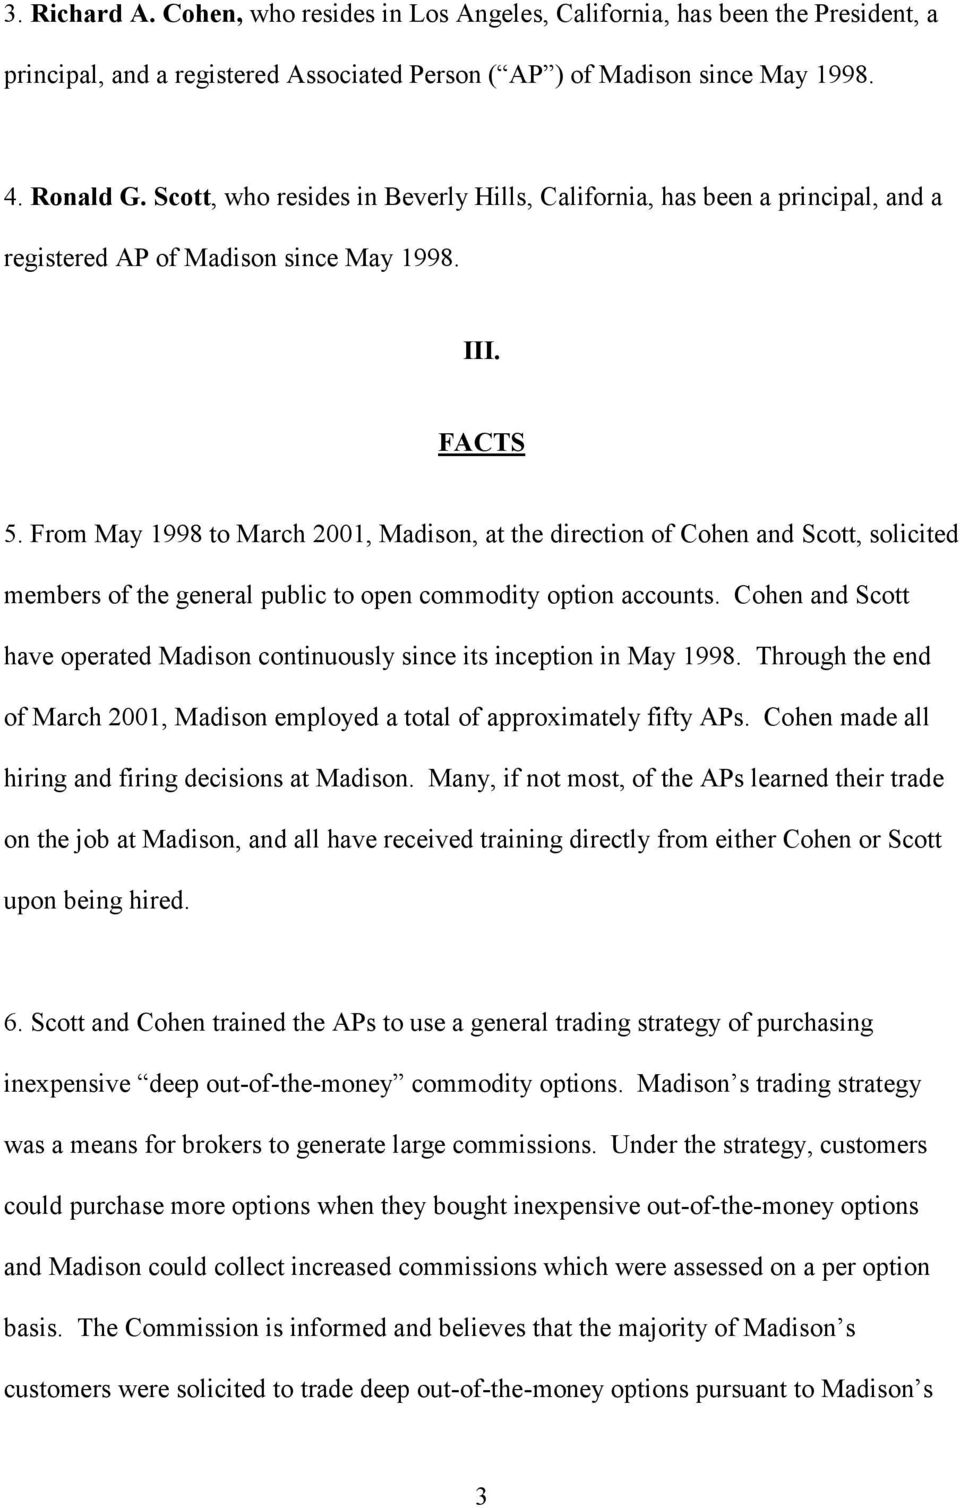 From May 1998 to March 2001, Madison, at the direction of Cohen and Scott, solicited members of the general public to open commodity option accounts.